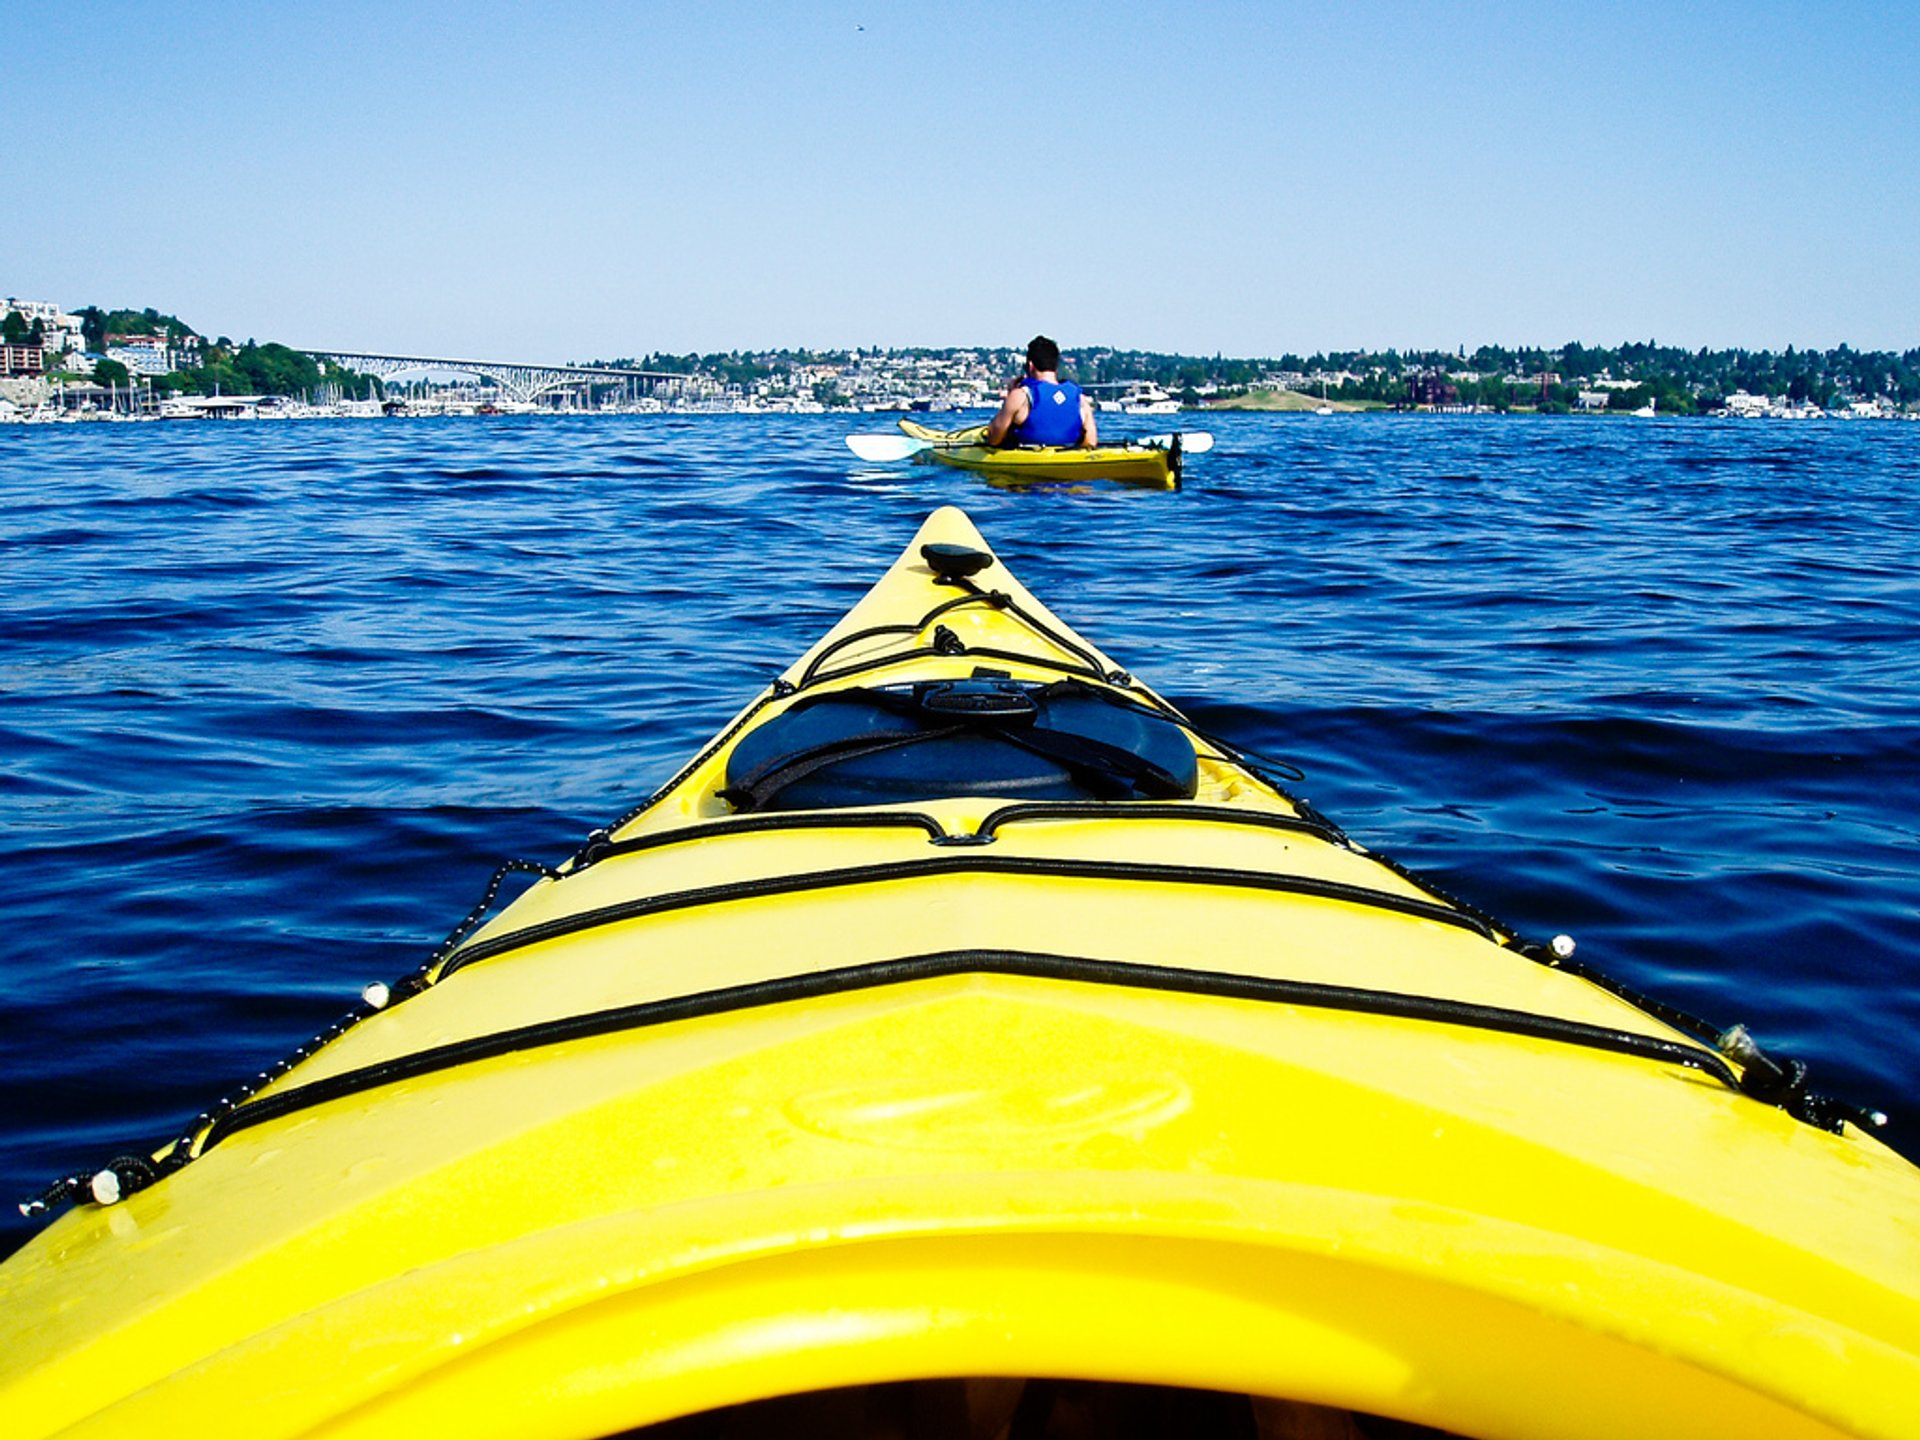 Kayaking on Lake Union 2019